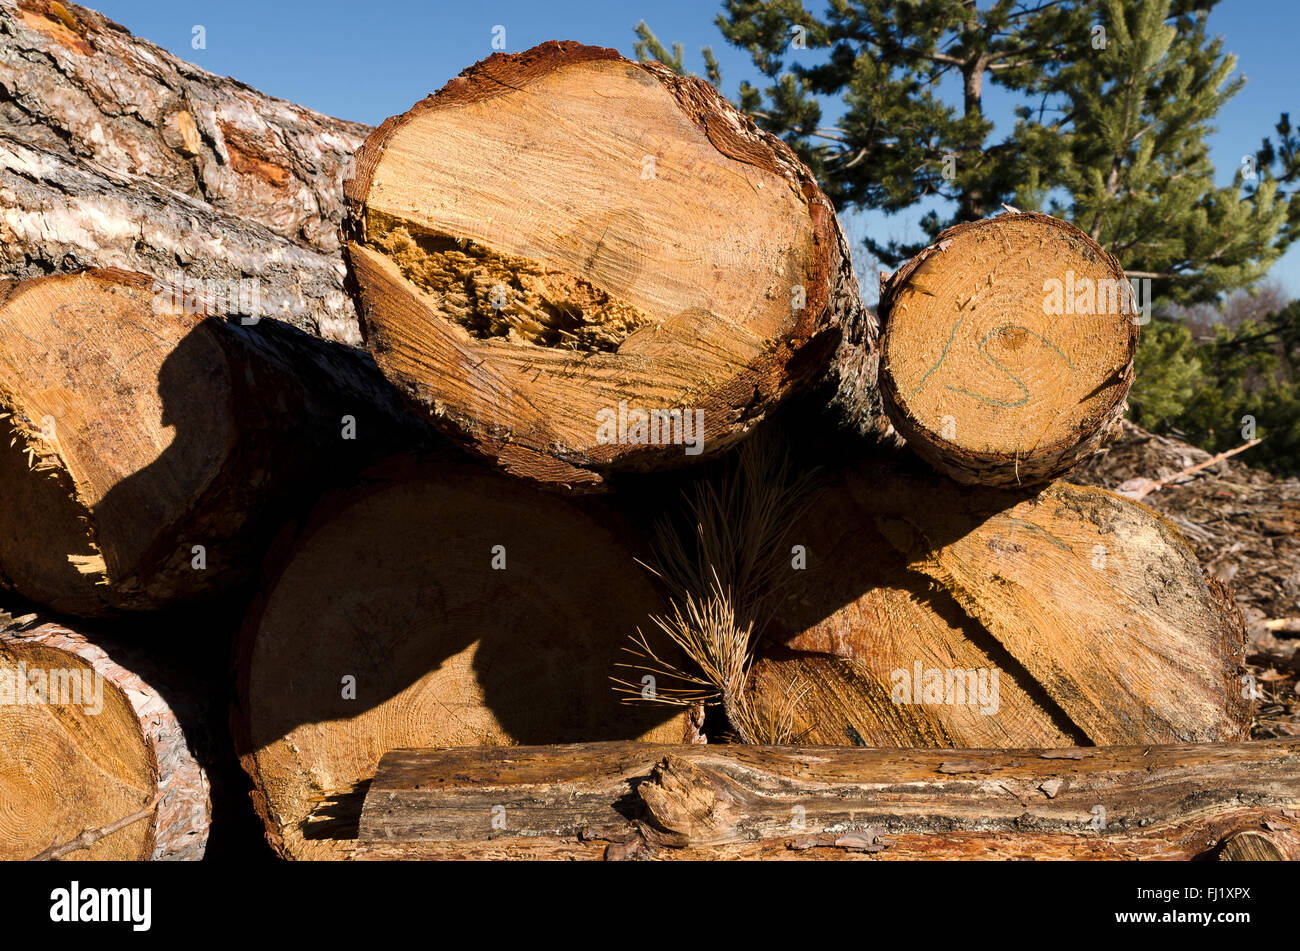 Timber of coniferous in a mountain in Bulgaria - Stock Image